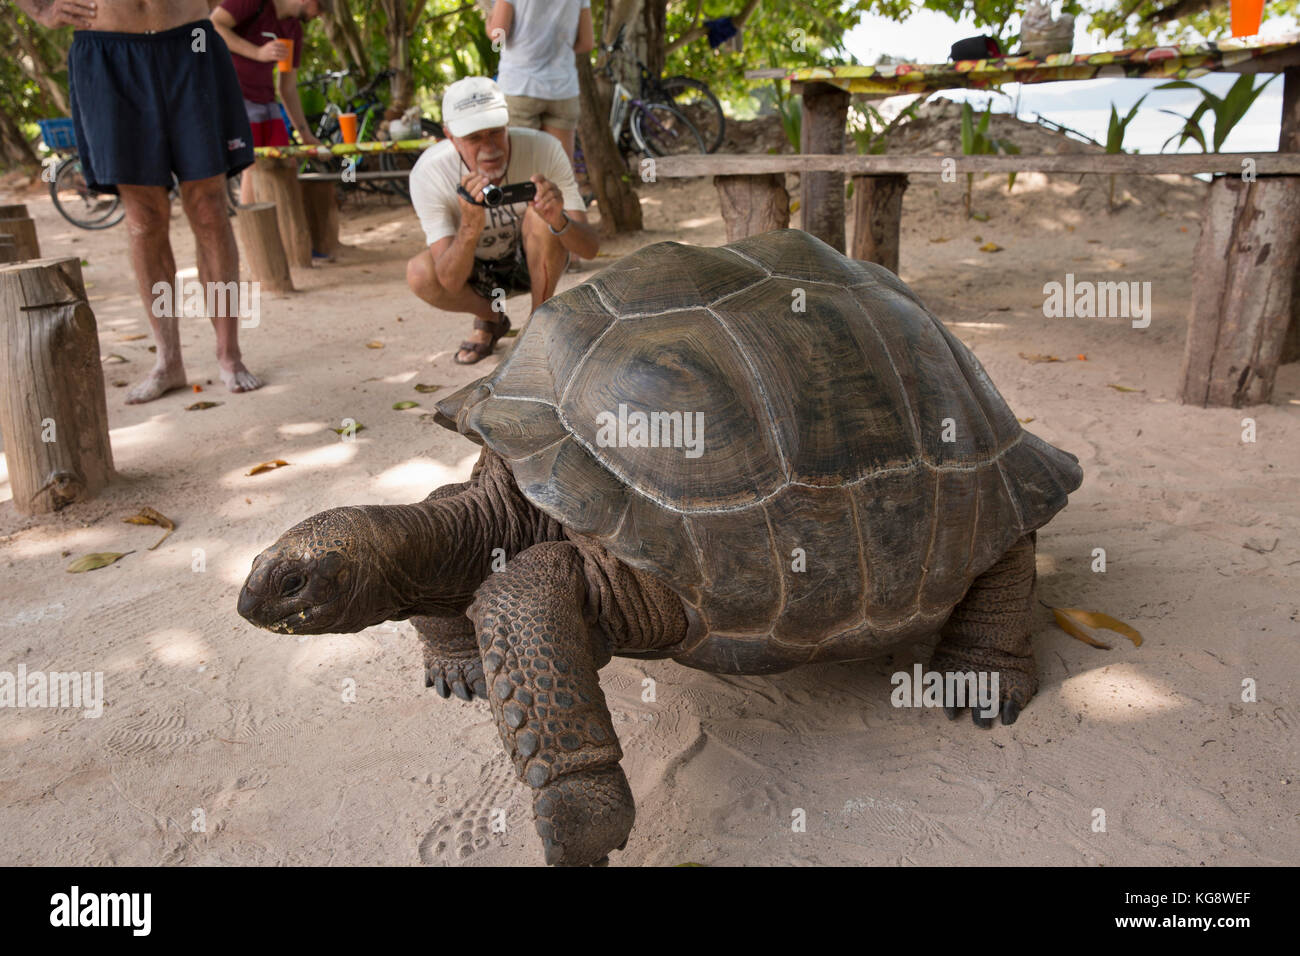 The Seychelles, La Digue, Anse Severe, wild Aldabra Giant Tortoise bring filmed by tourist - Stock Image